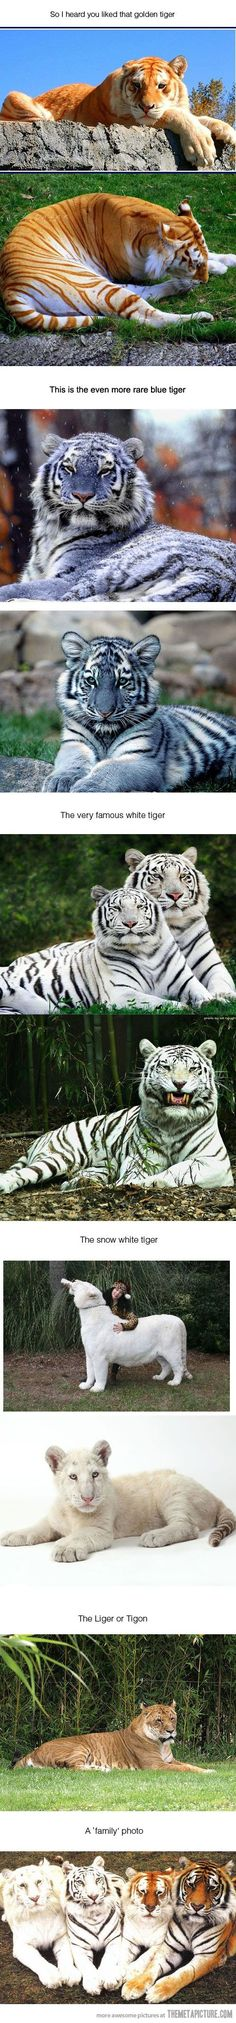 Rare tigers.  Beautiful.